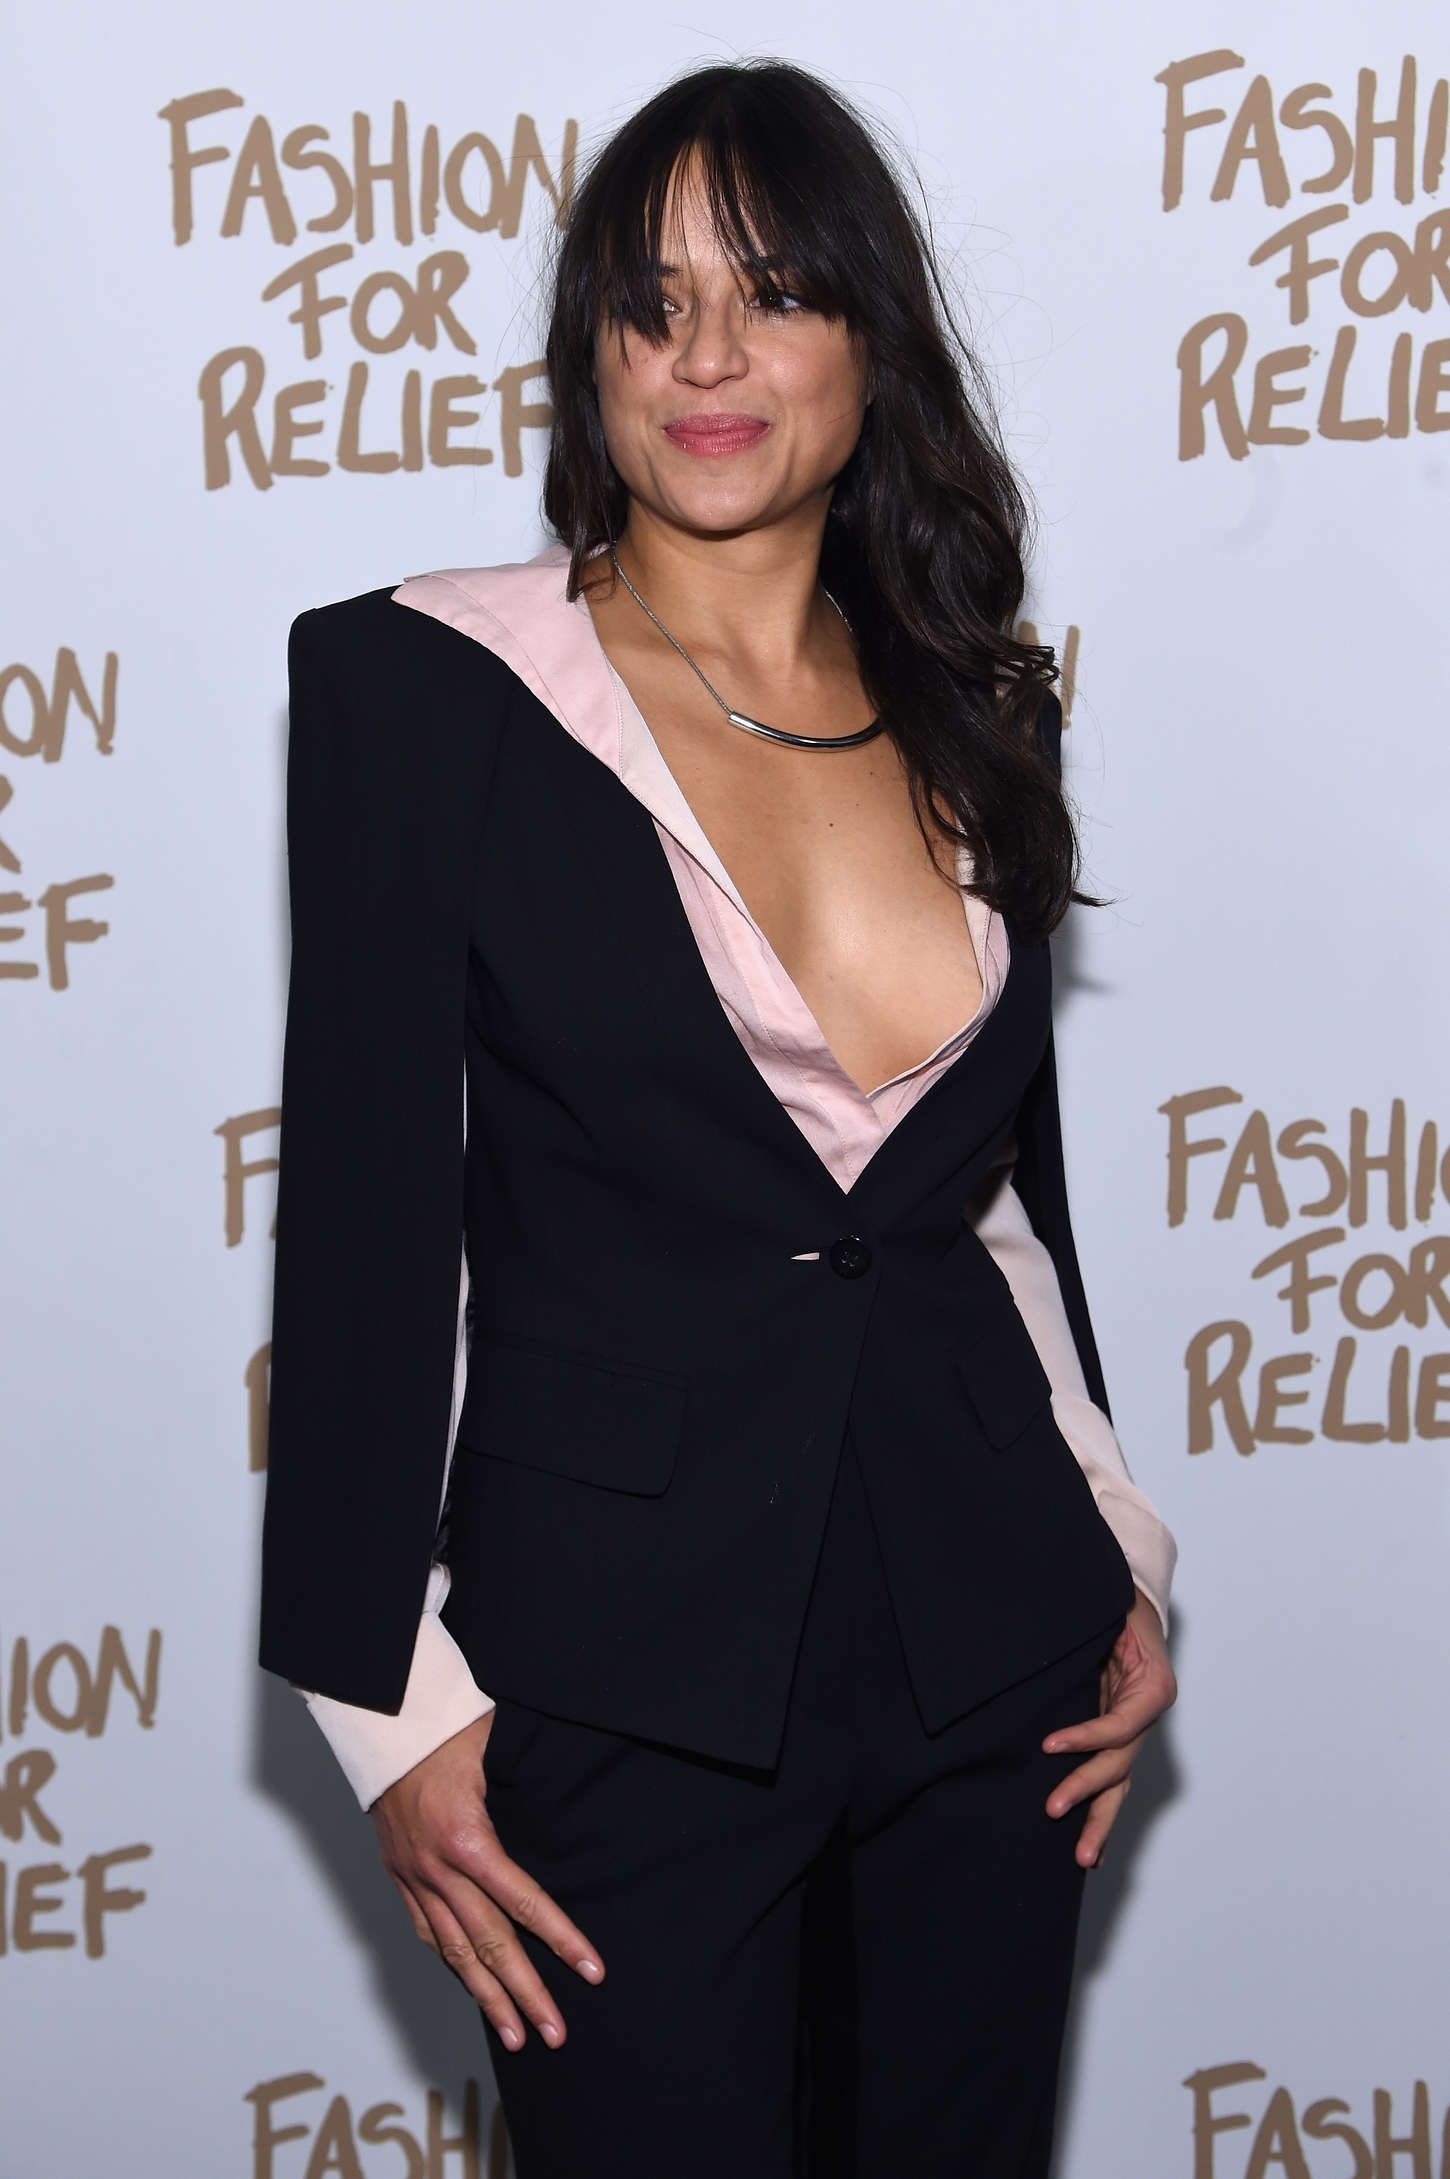 Michelle Rodriguez at Naomi Campbell's Fashion For Relief Charity Fashion Show à NYC